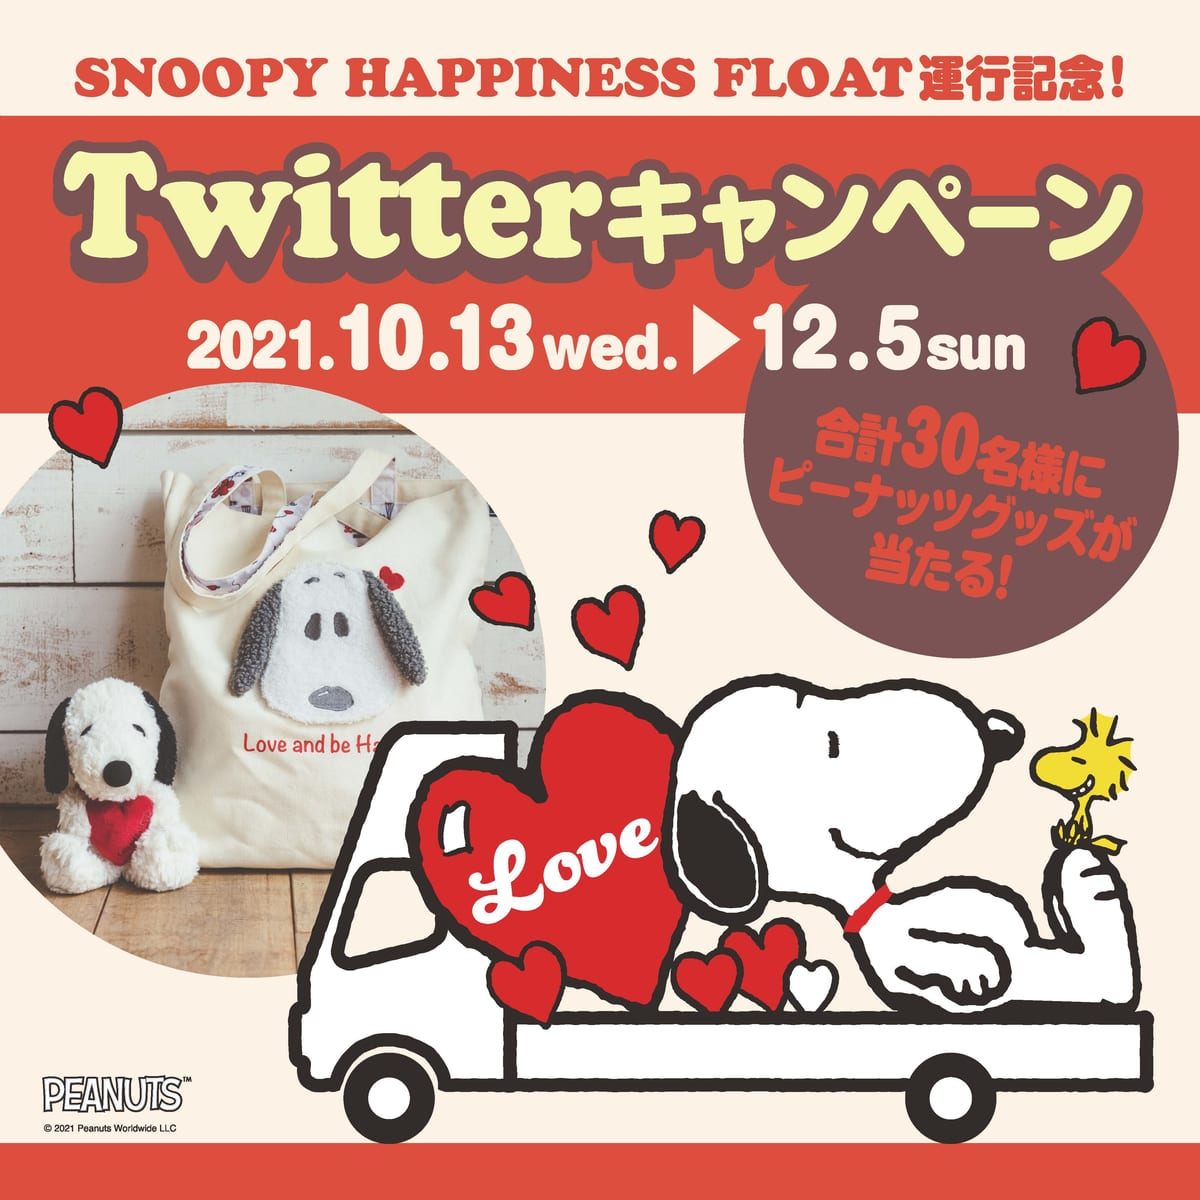 『SNOOPY HAPPINESS FLOAT 2021』Twitterキャンペーン